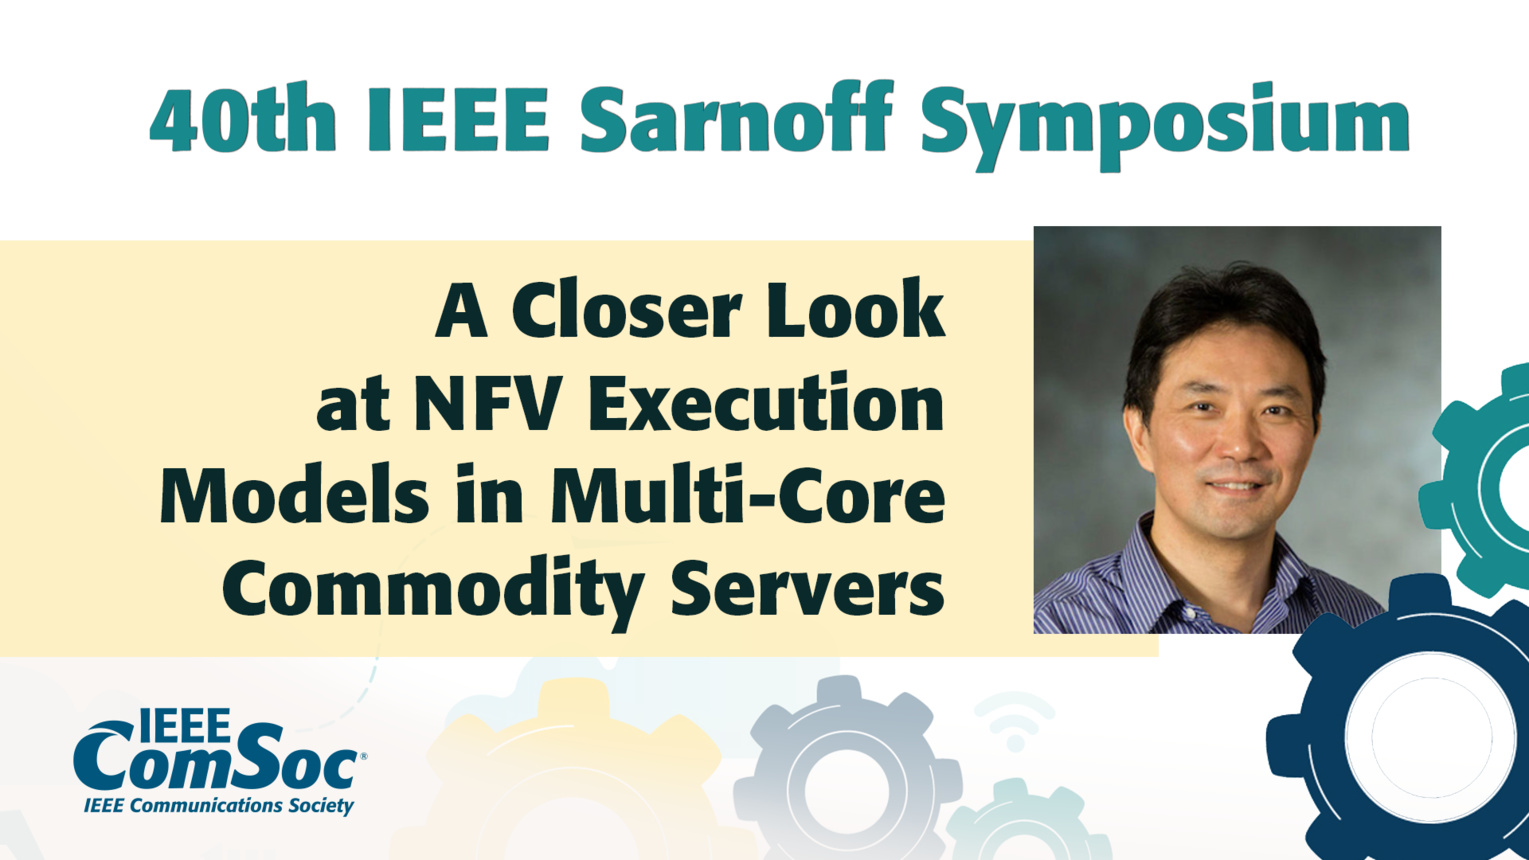 A Closer Look at NFV Execution Models - Zhi-Li Zhang - IEEE Sarnoff Symposium, 2019